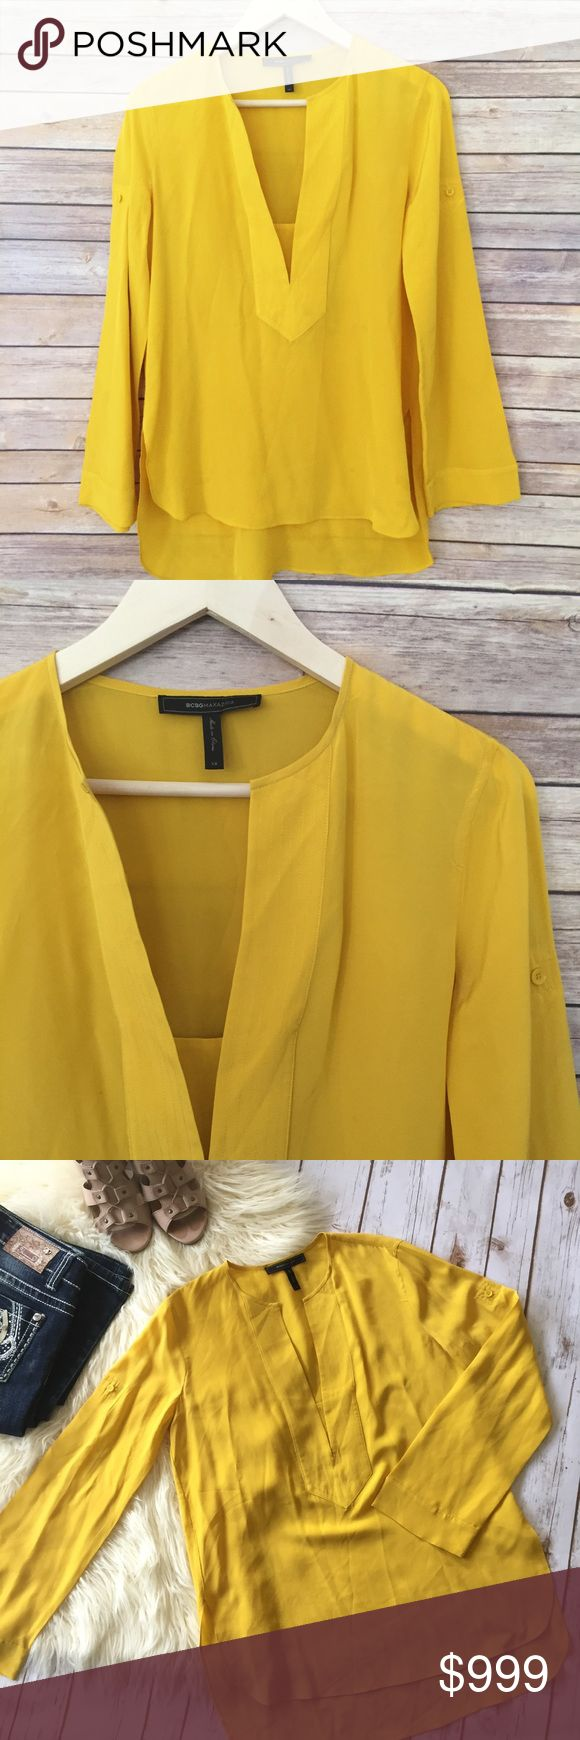 "BCBG yellow blouse with modest bust piece This is a great, bright blouse with modest piece of cloth across the chest, so it doesn't go too low. Great color for any season!  Measurements laying flat: fits more like a S/M, in my opinion. * Bust 19"" * Length 26"" * Arm 24""  Condition/Flaws * Gently used, but still in excellent condition * No significant flaws (stains, rips, pilling)  Item # * BCBGeneration Tops Blouses"